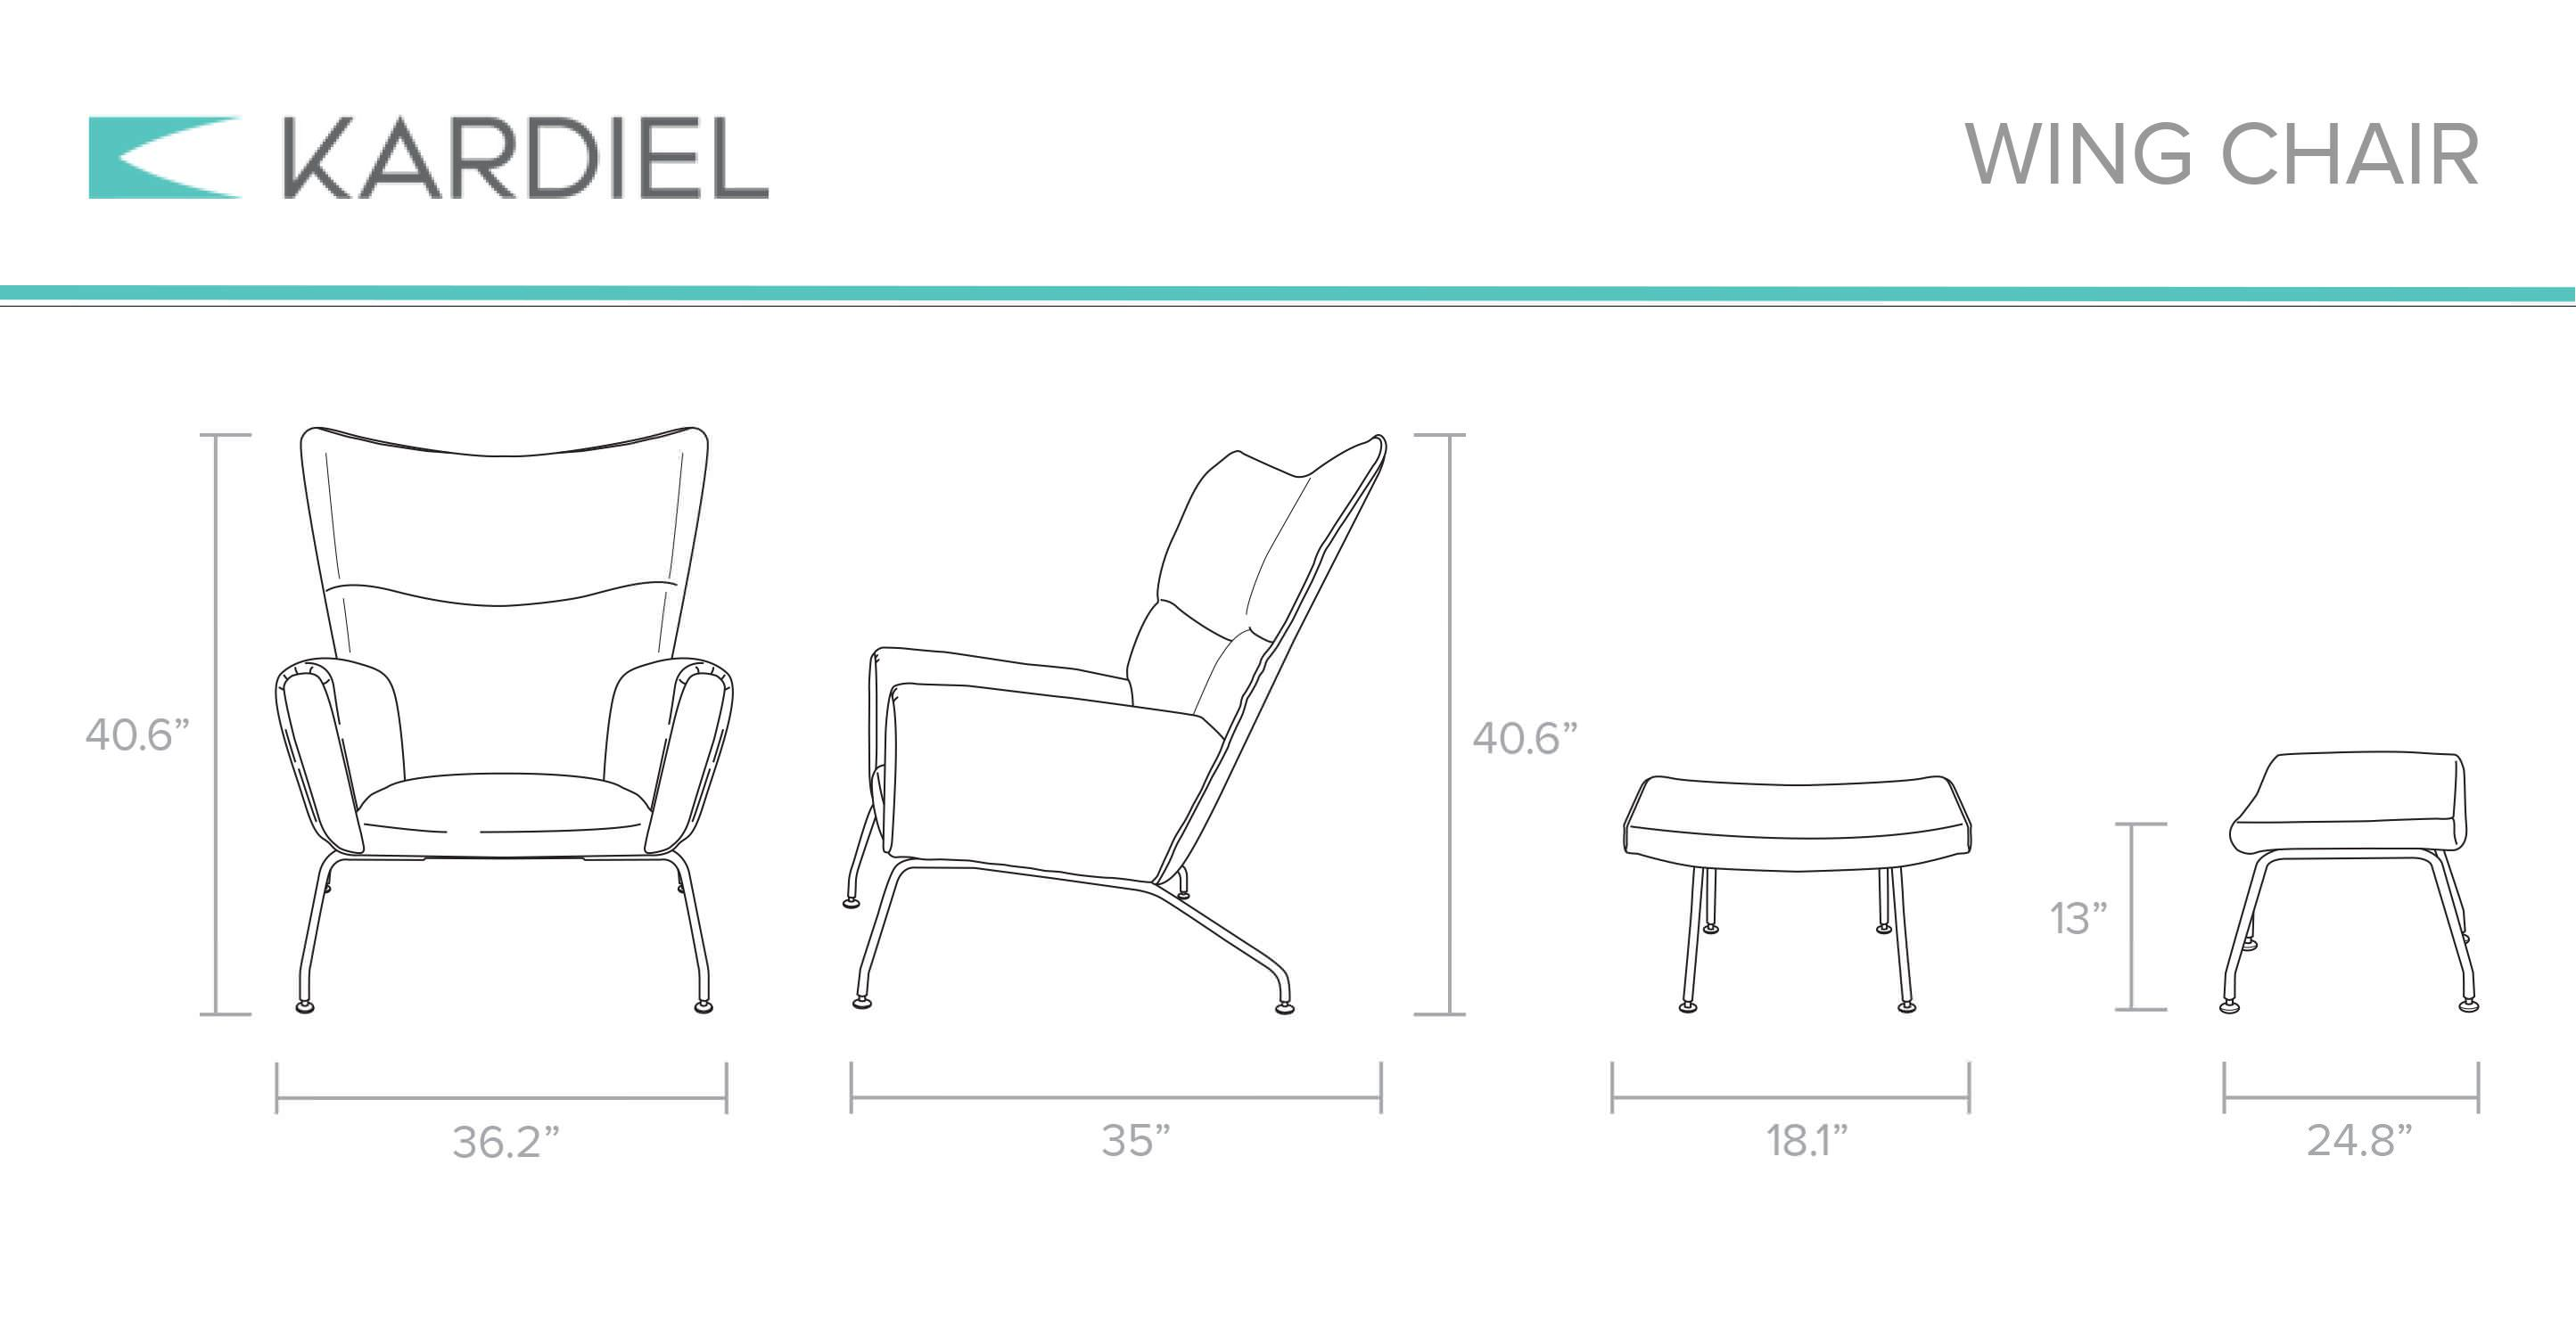 drawings-wing-chair.jpg